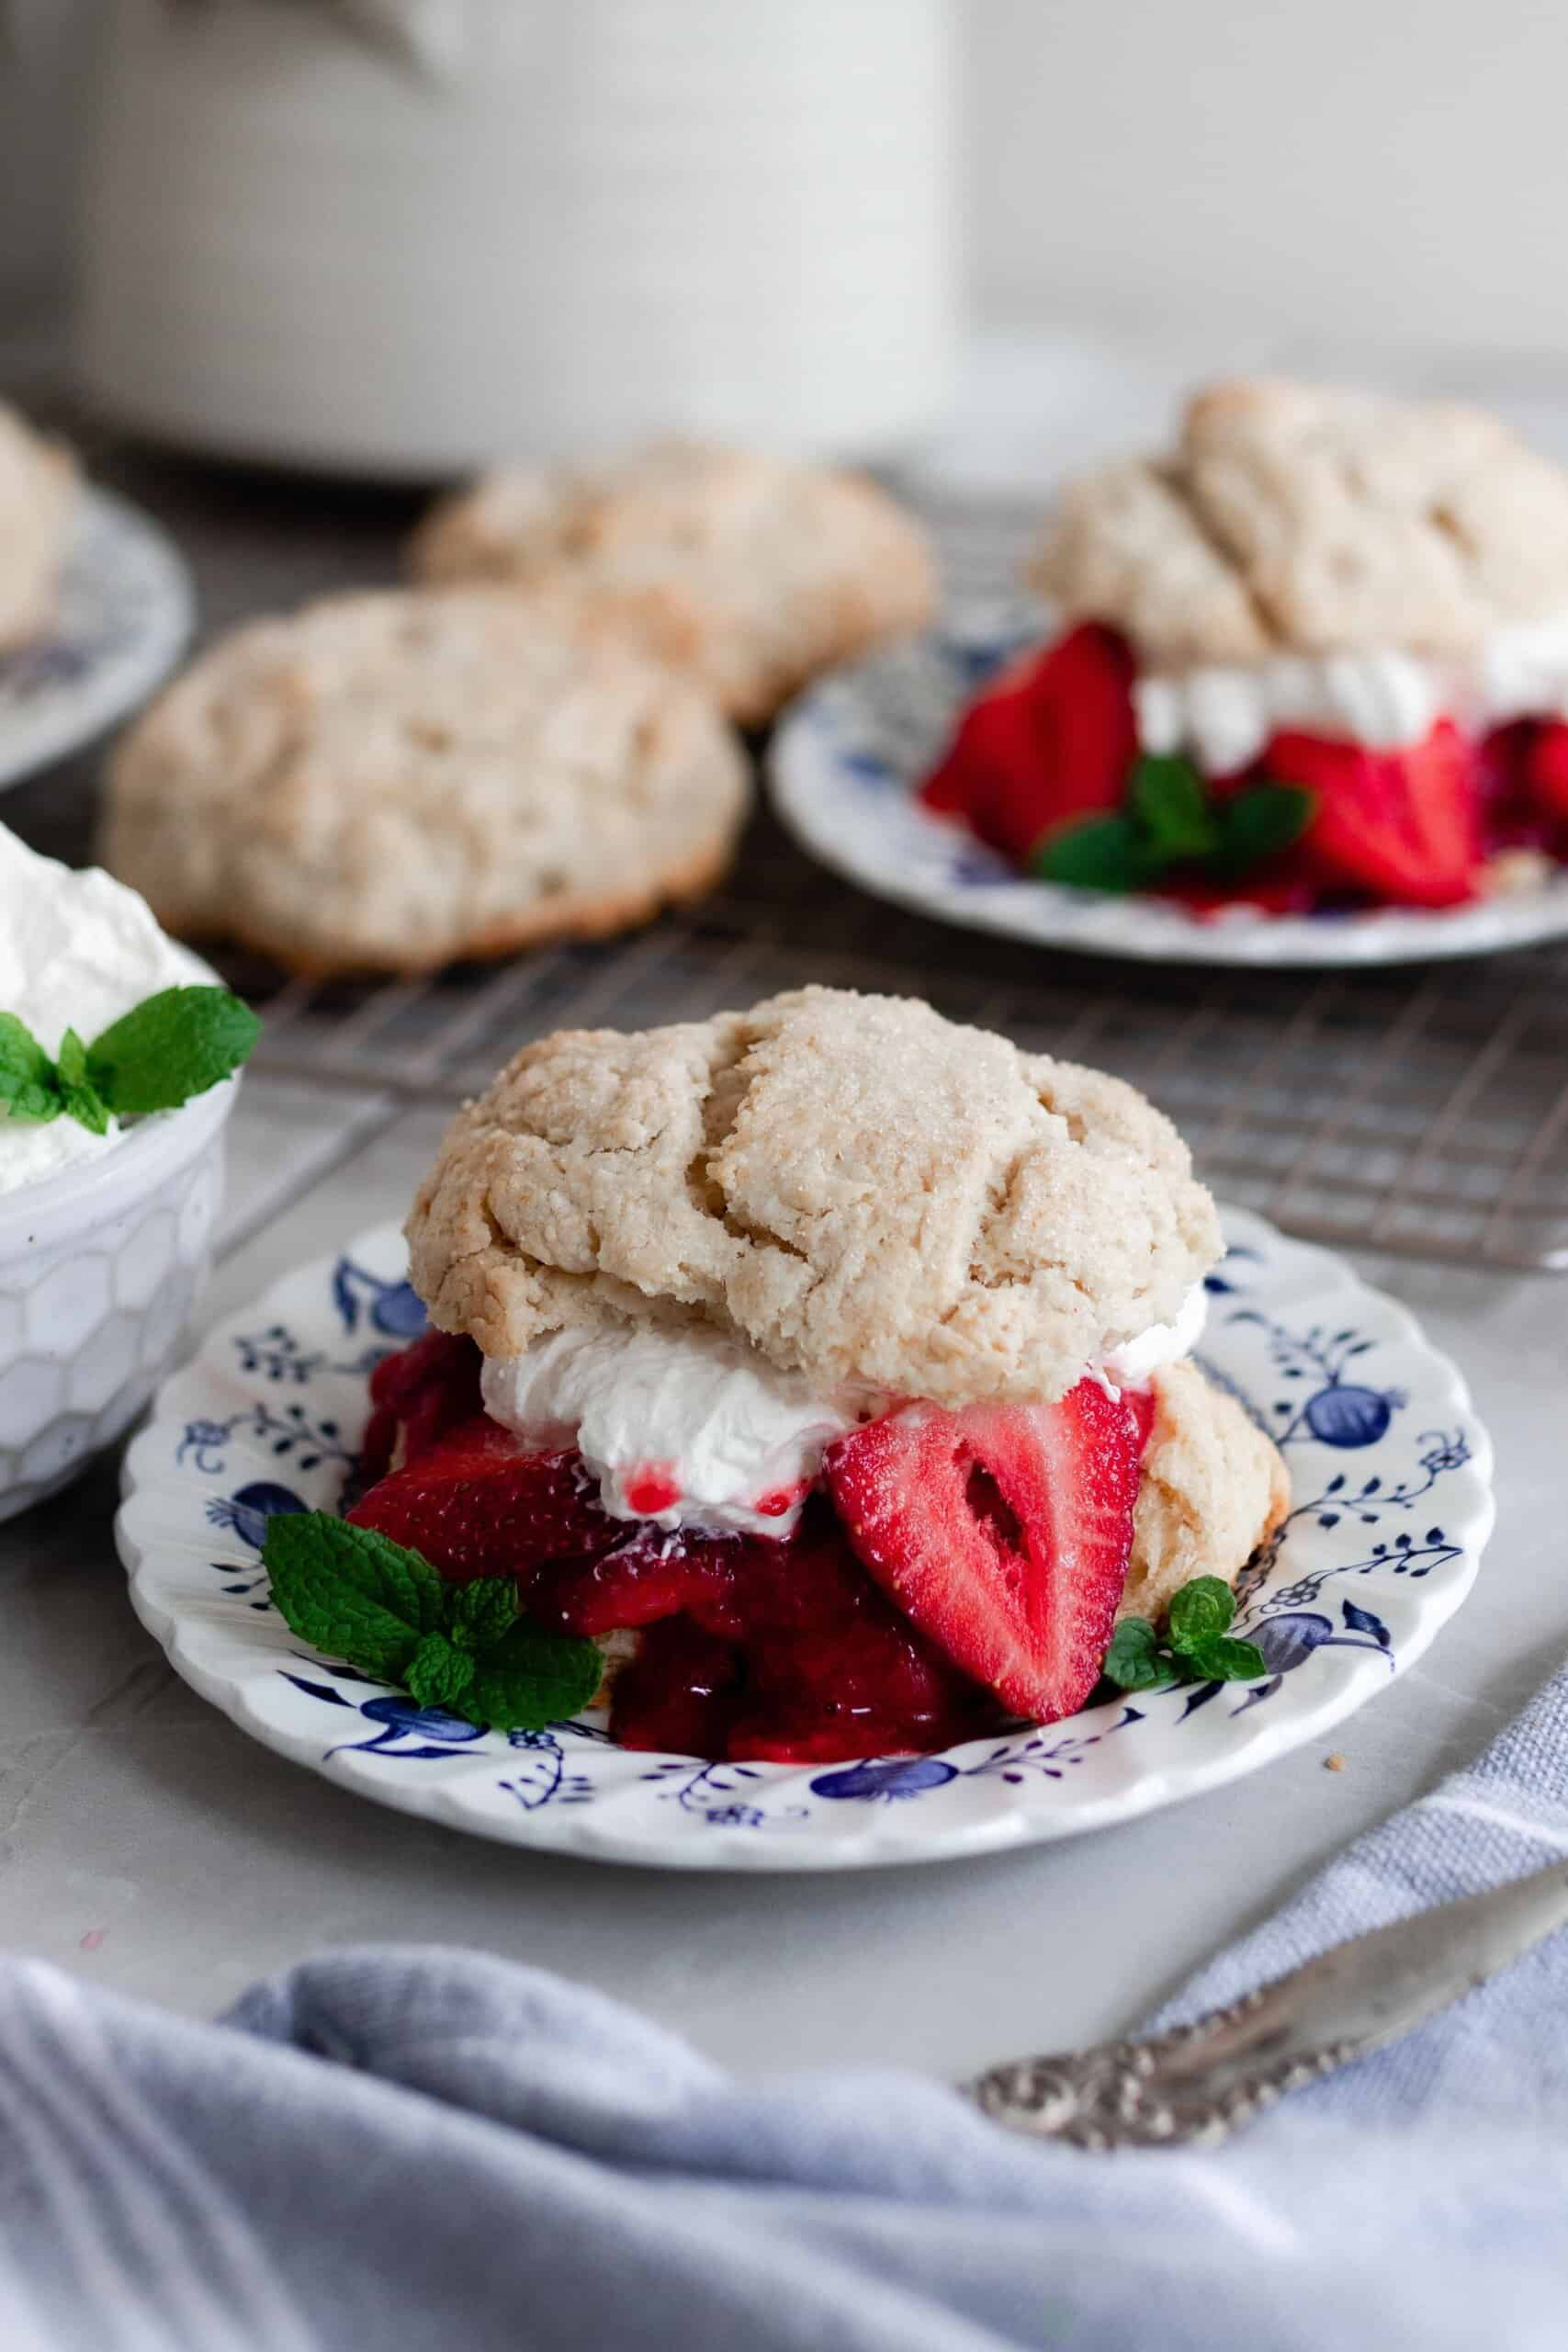 two strawberry shortcakes with whipped cream and strawberries layered between the biscuits on a white and blue plates with extra biscuits and whipped cream behind the plates